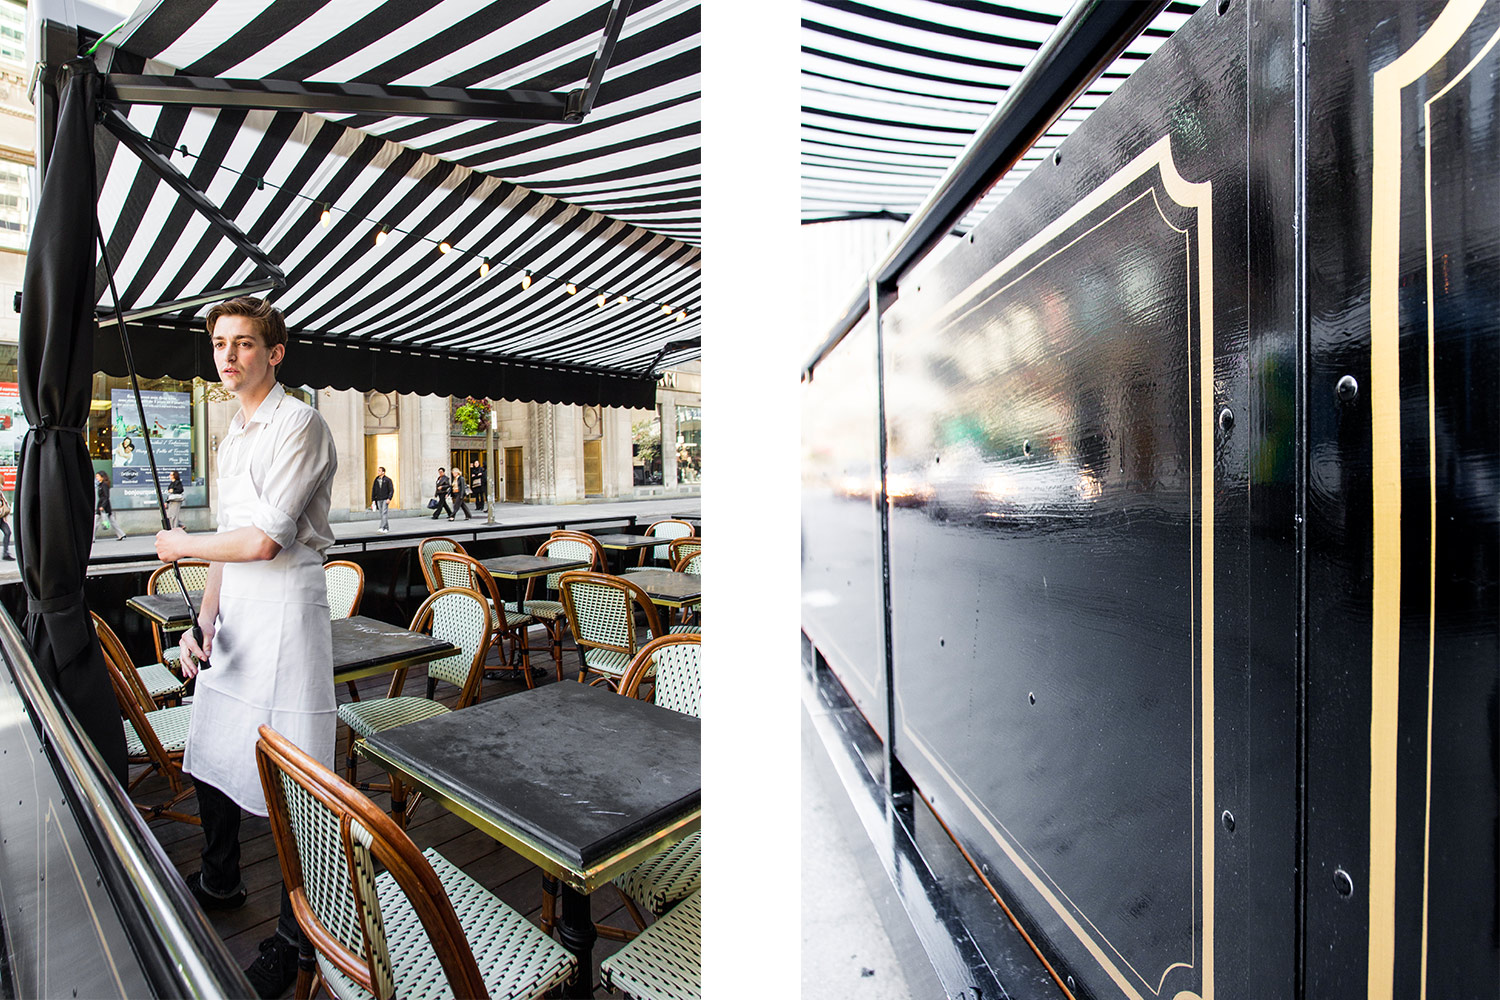 View of the awning in white and black canvas and black marble tables with bistro chairs in the Parisian style. Art Deco gilded moldings painted by hand.